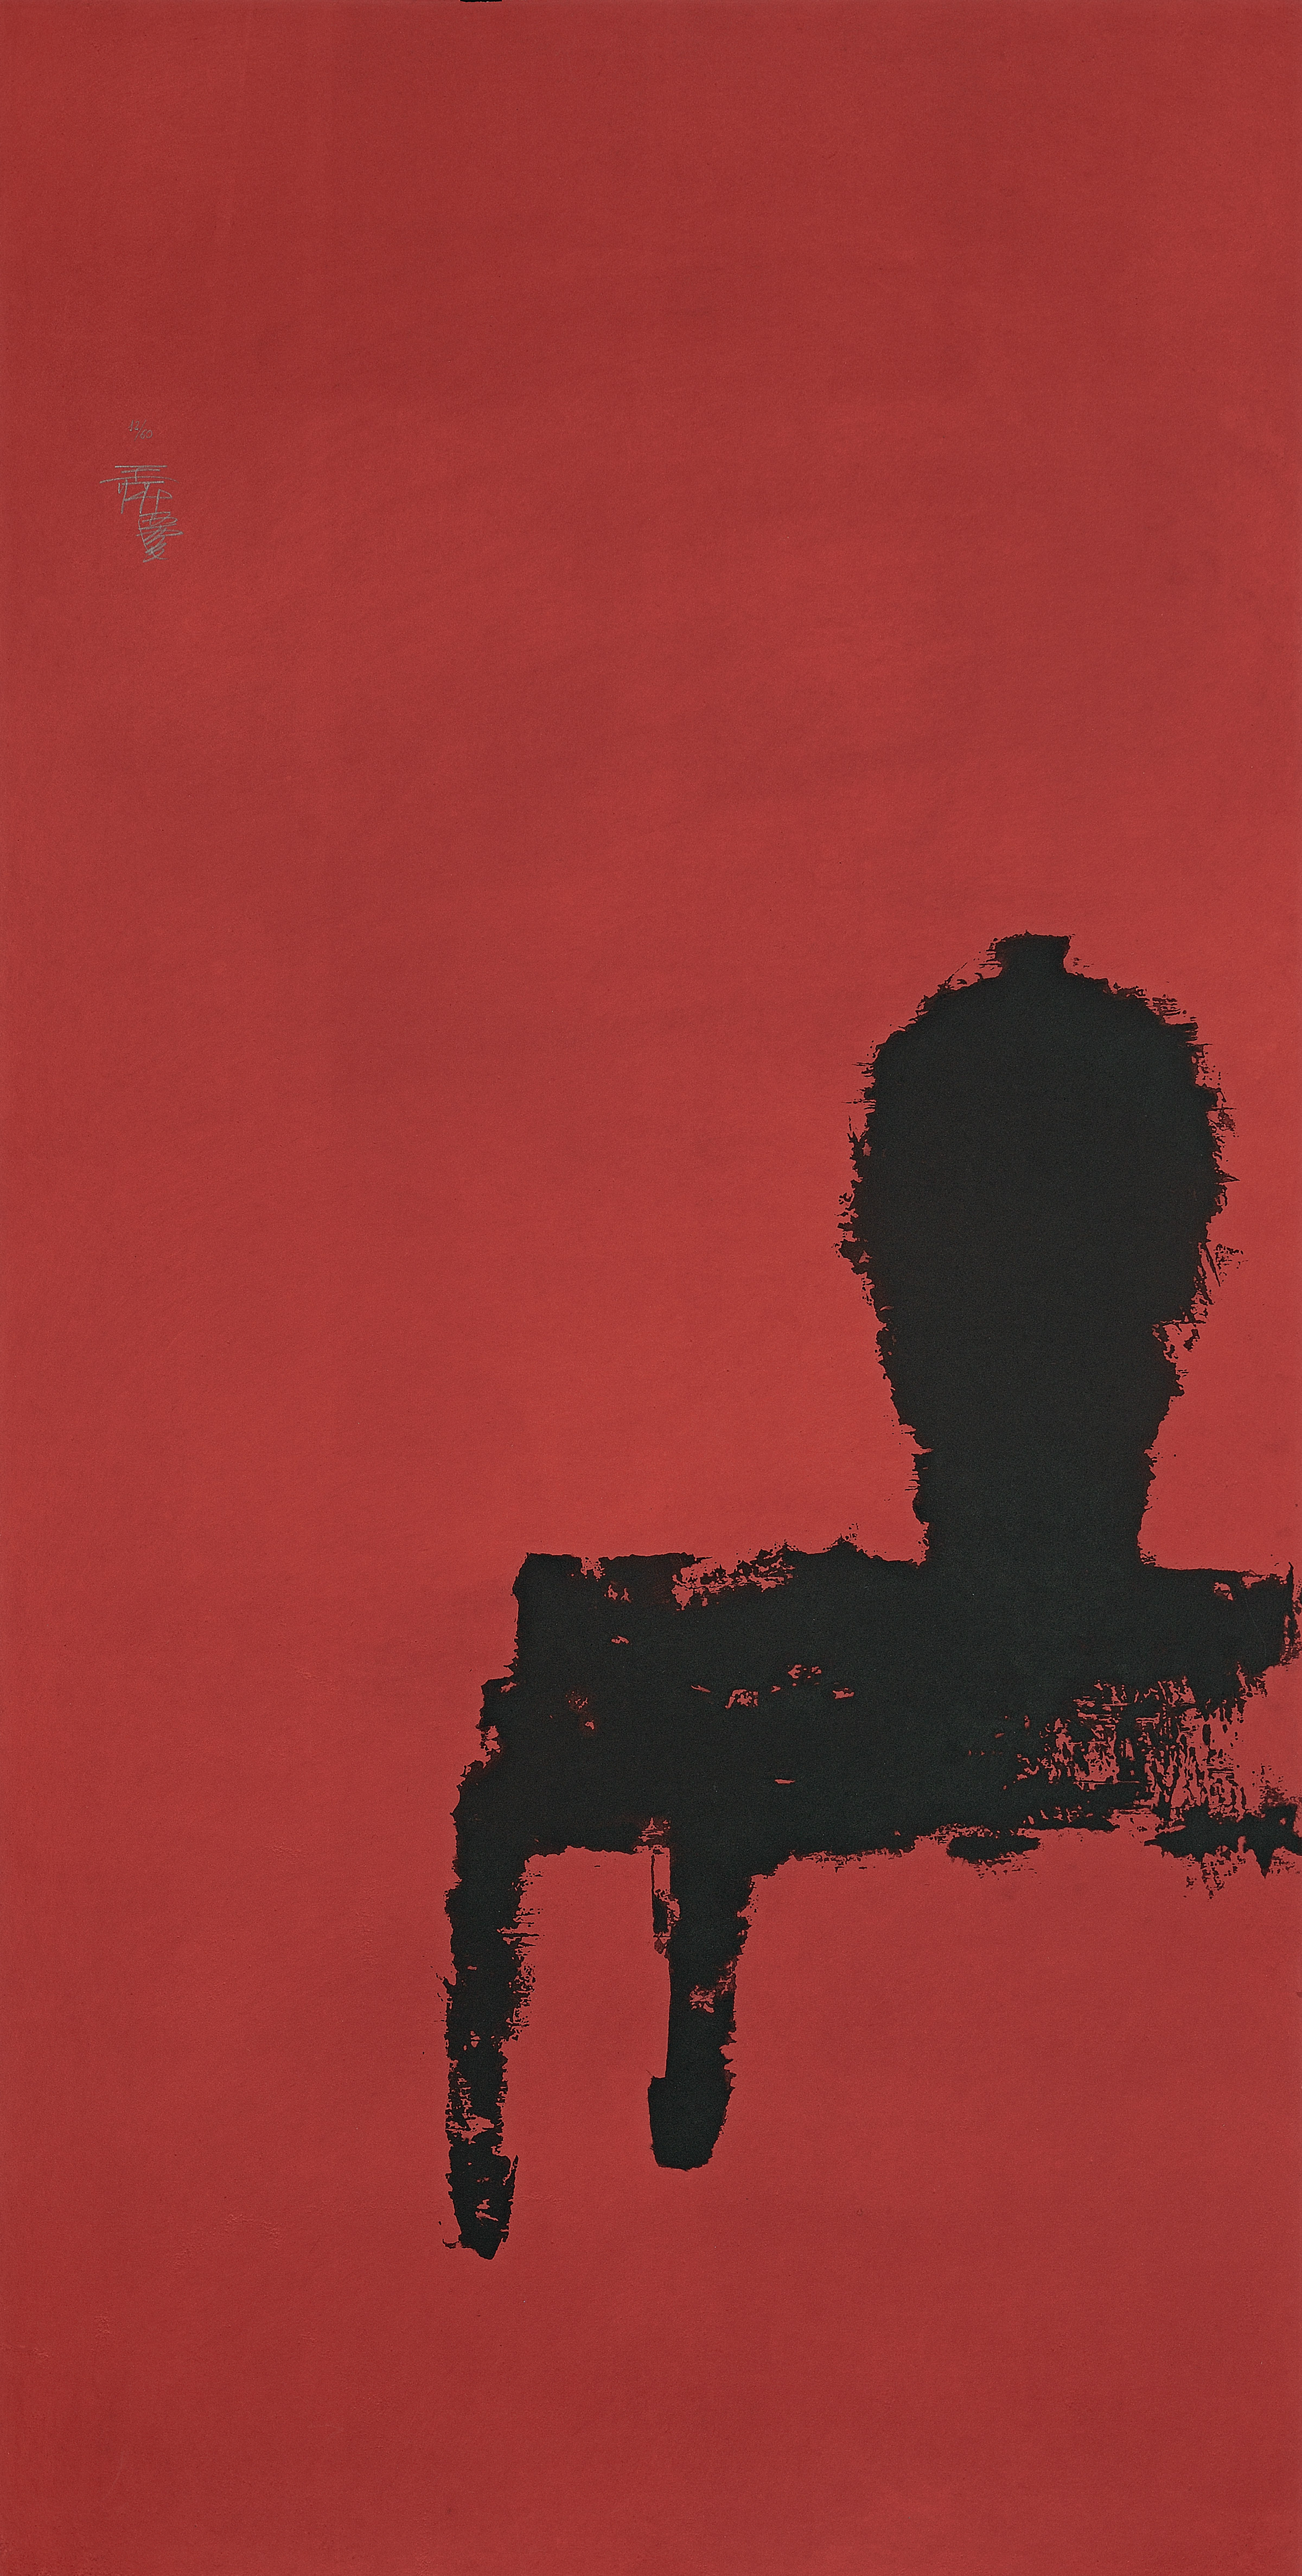 Chinese Contemporary Art, featuring etchings by Wang Huaiqing   March 13 – April 26th